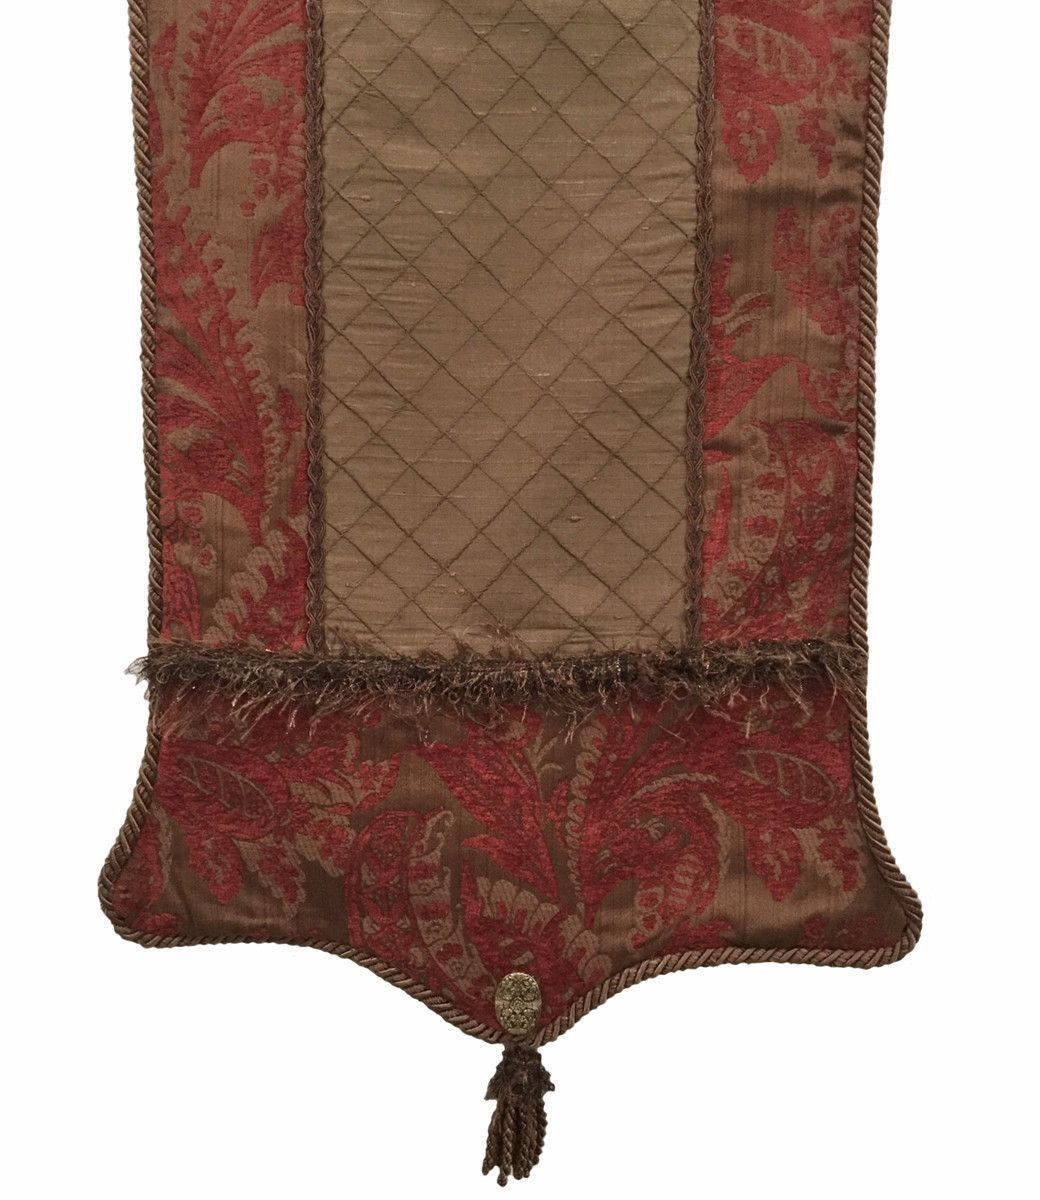 Brown And Red Table Runner   Reilly Chance Collection   Reilly Chance  Collection